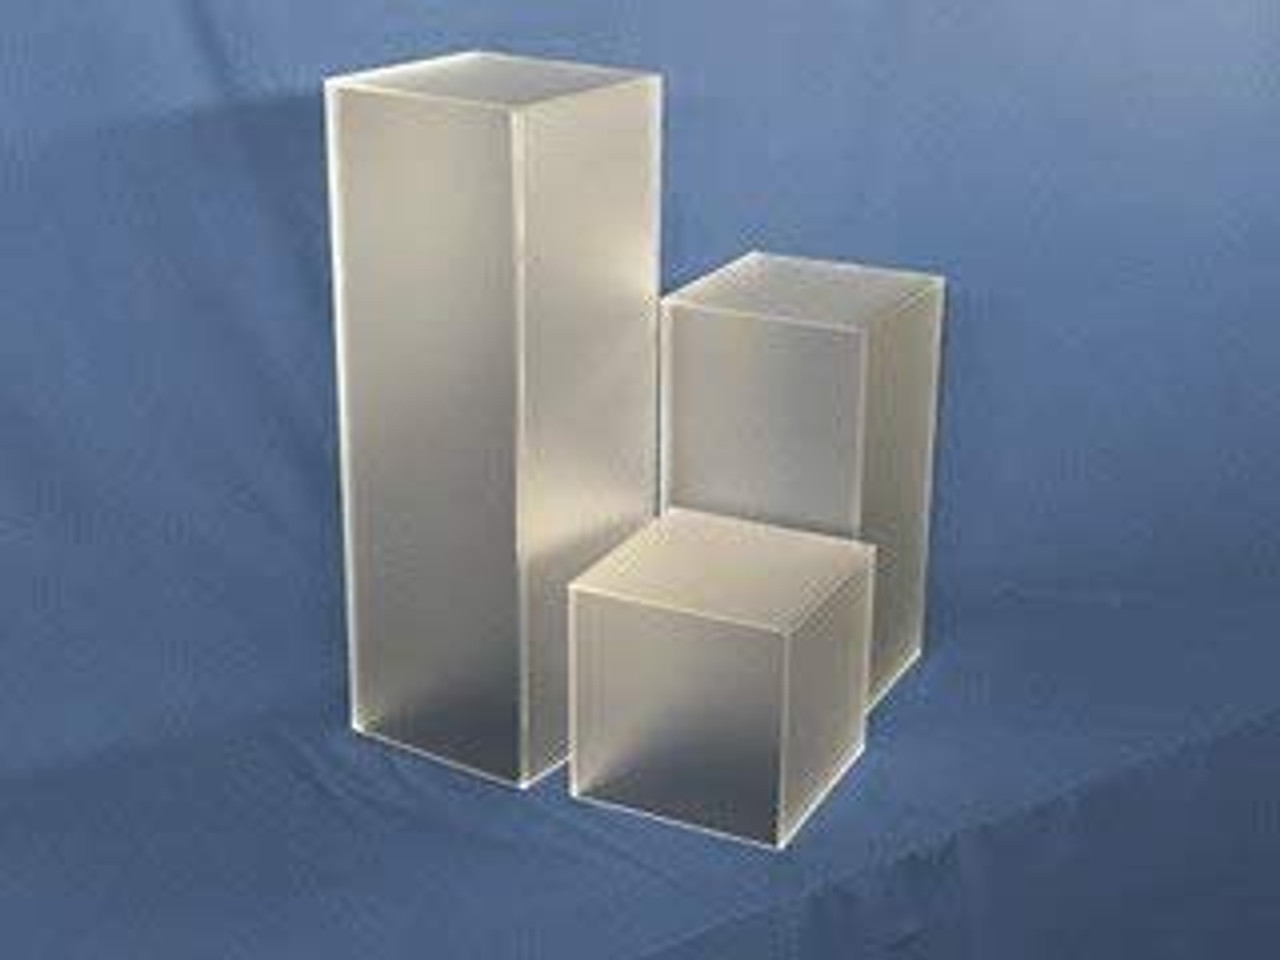 Clear Stands Frosted Square Acrylic Display Cube, 12 Inch